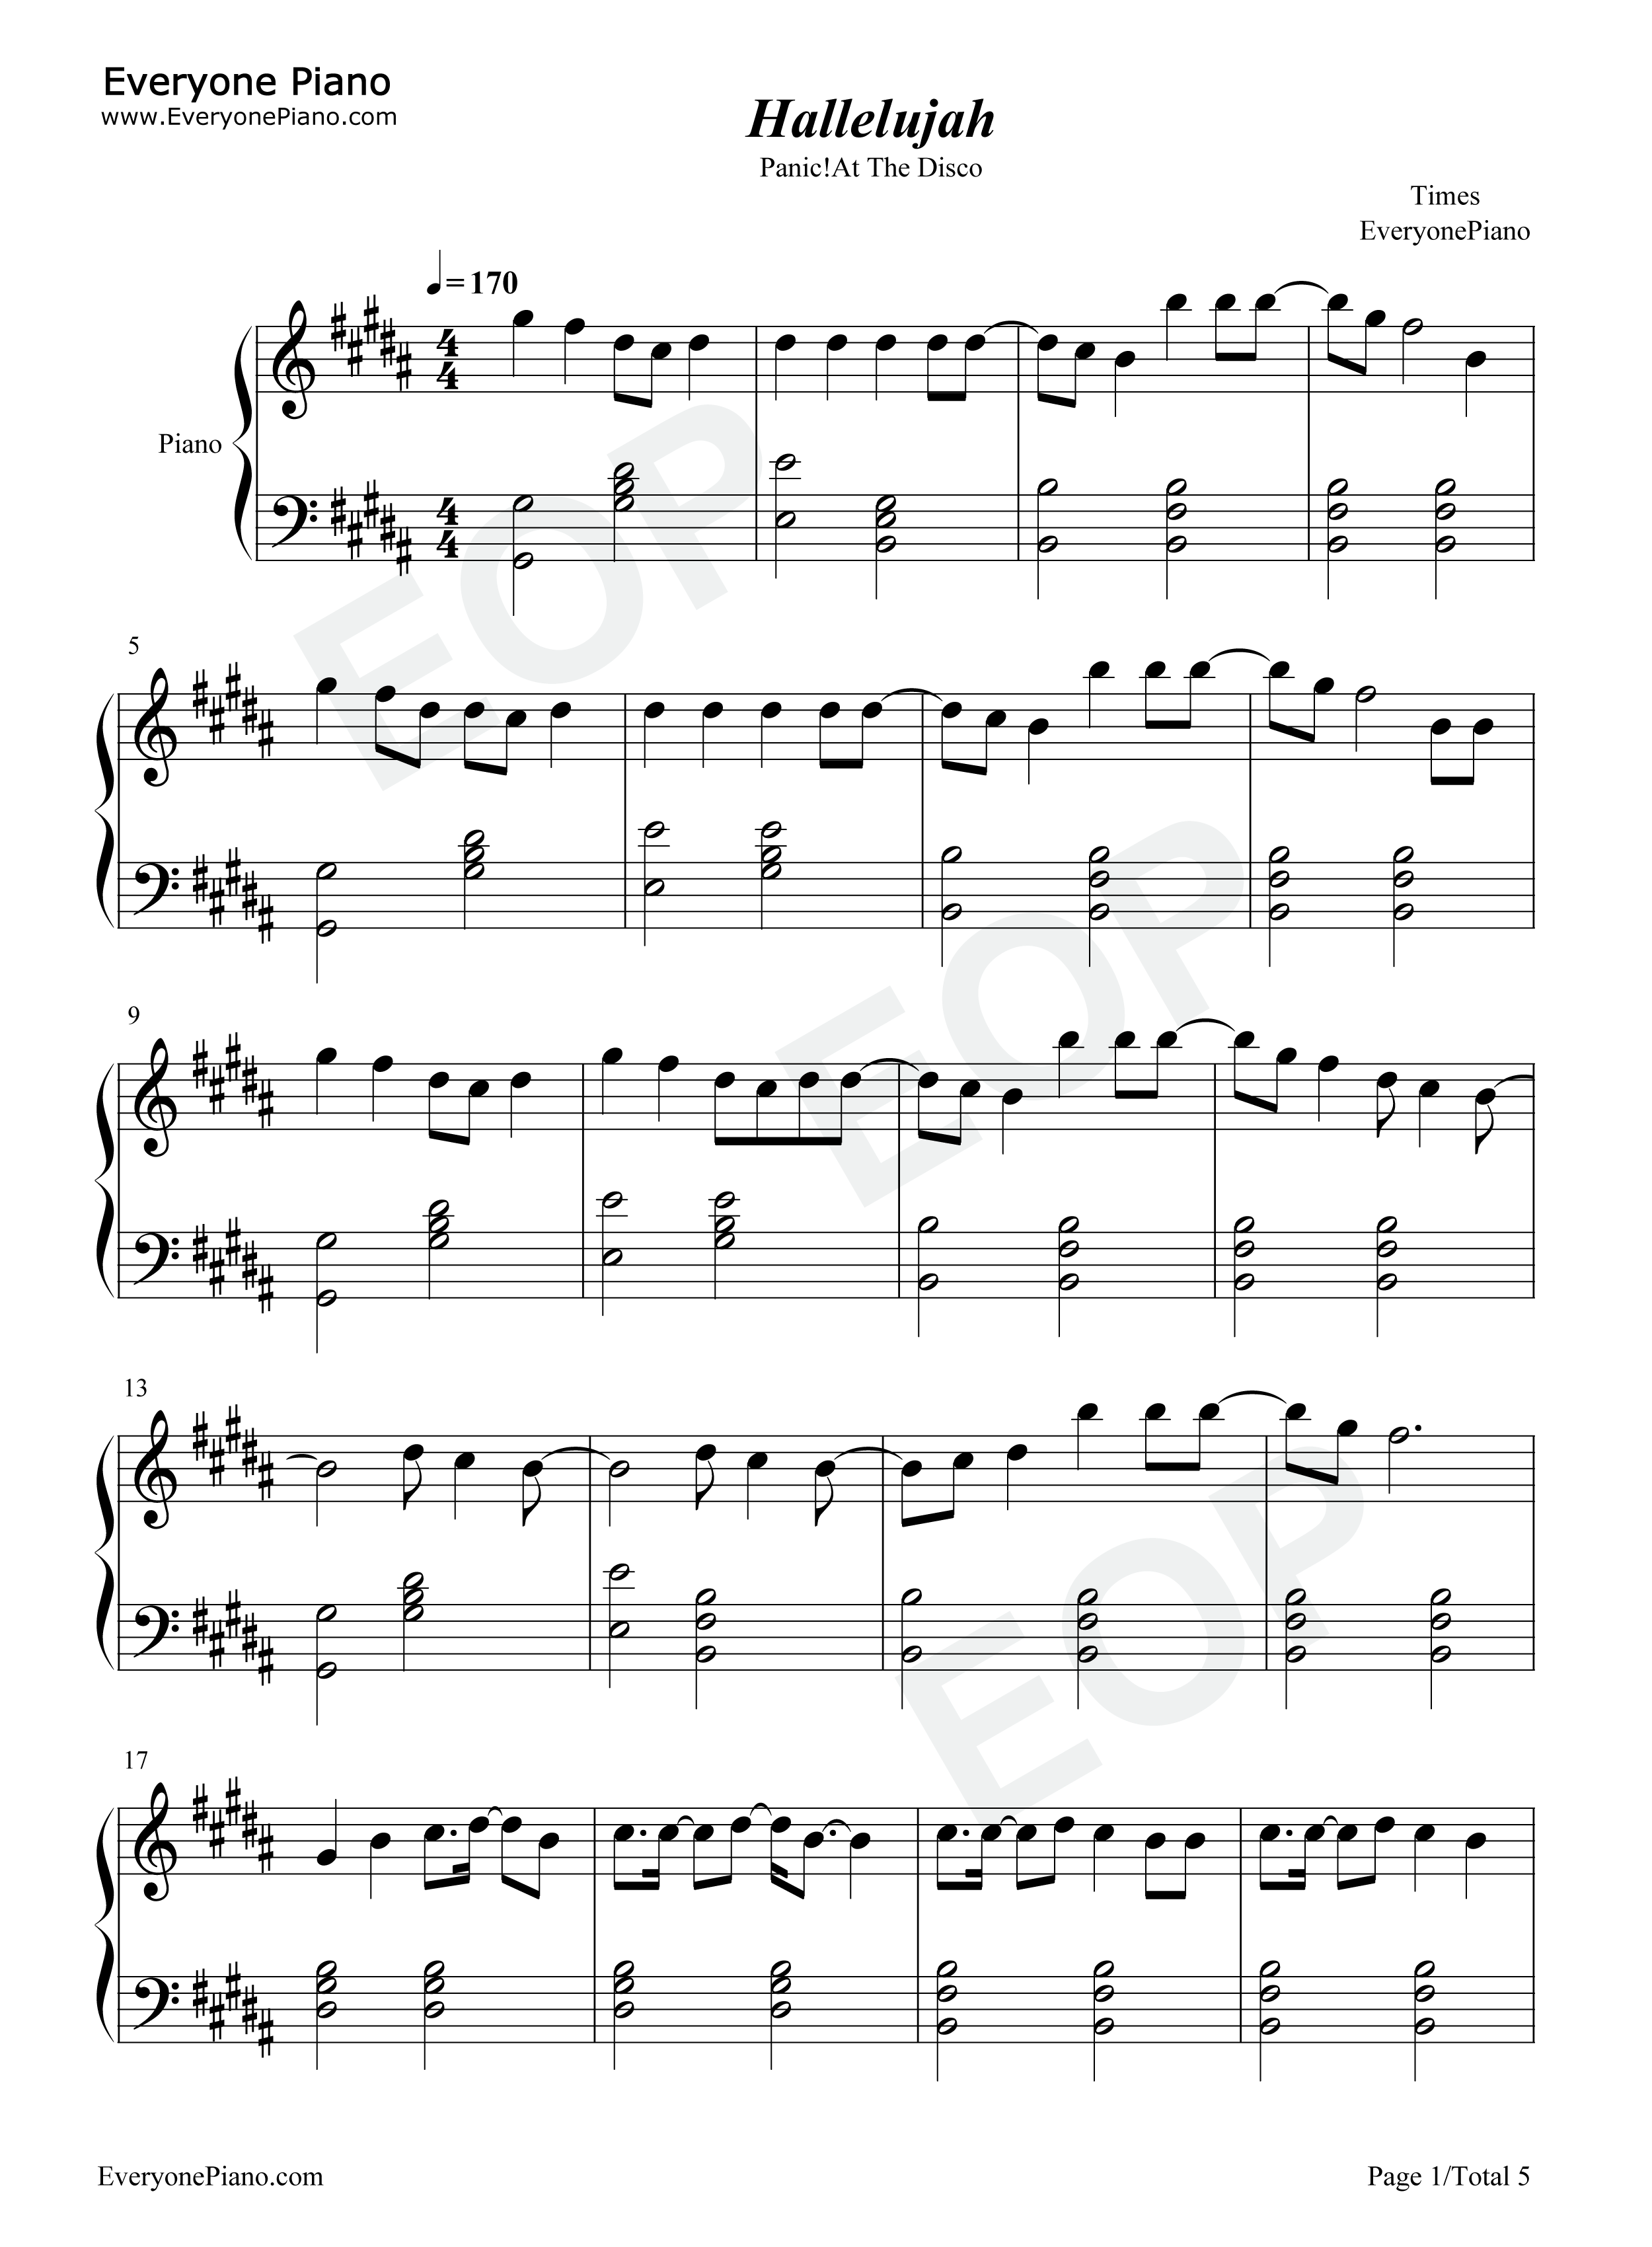 Hallelujah panic at the disco stave preview 1 free piano sheet listen now print sheet hallelujah panic at the disco stave preview 1 hexwebz Gallery